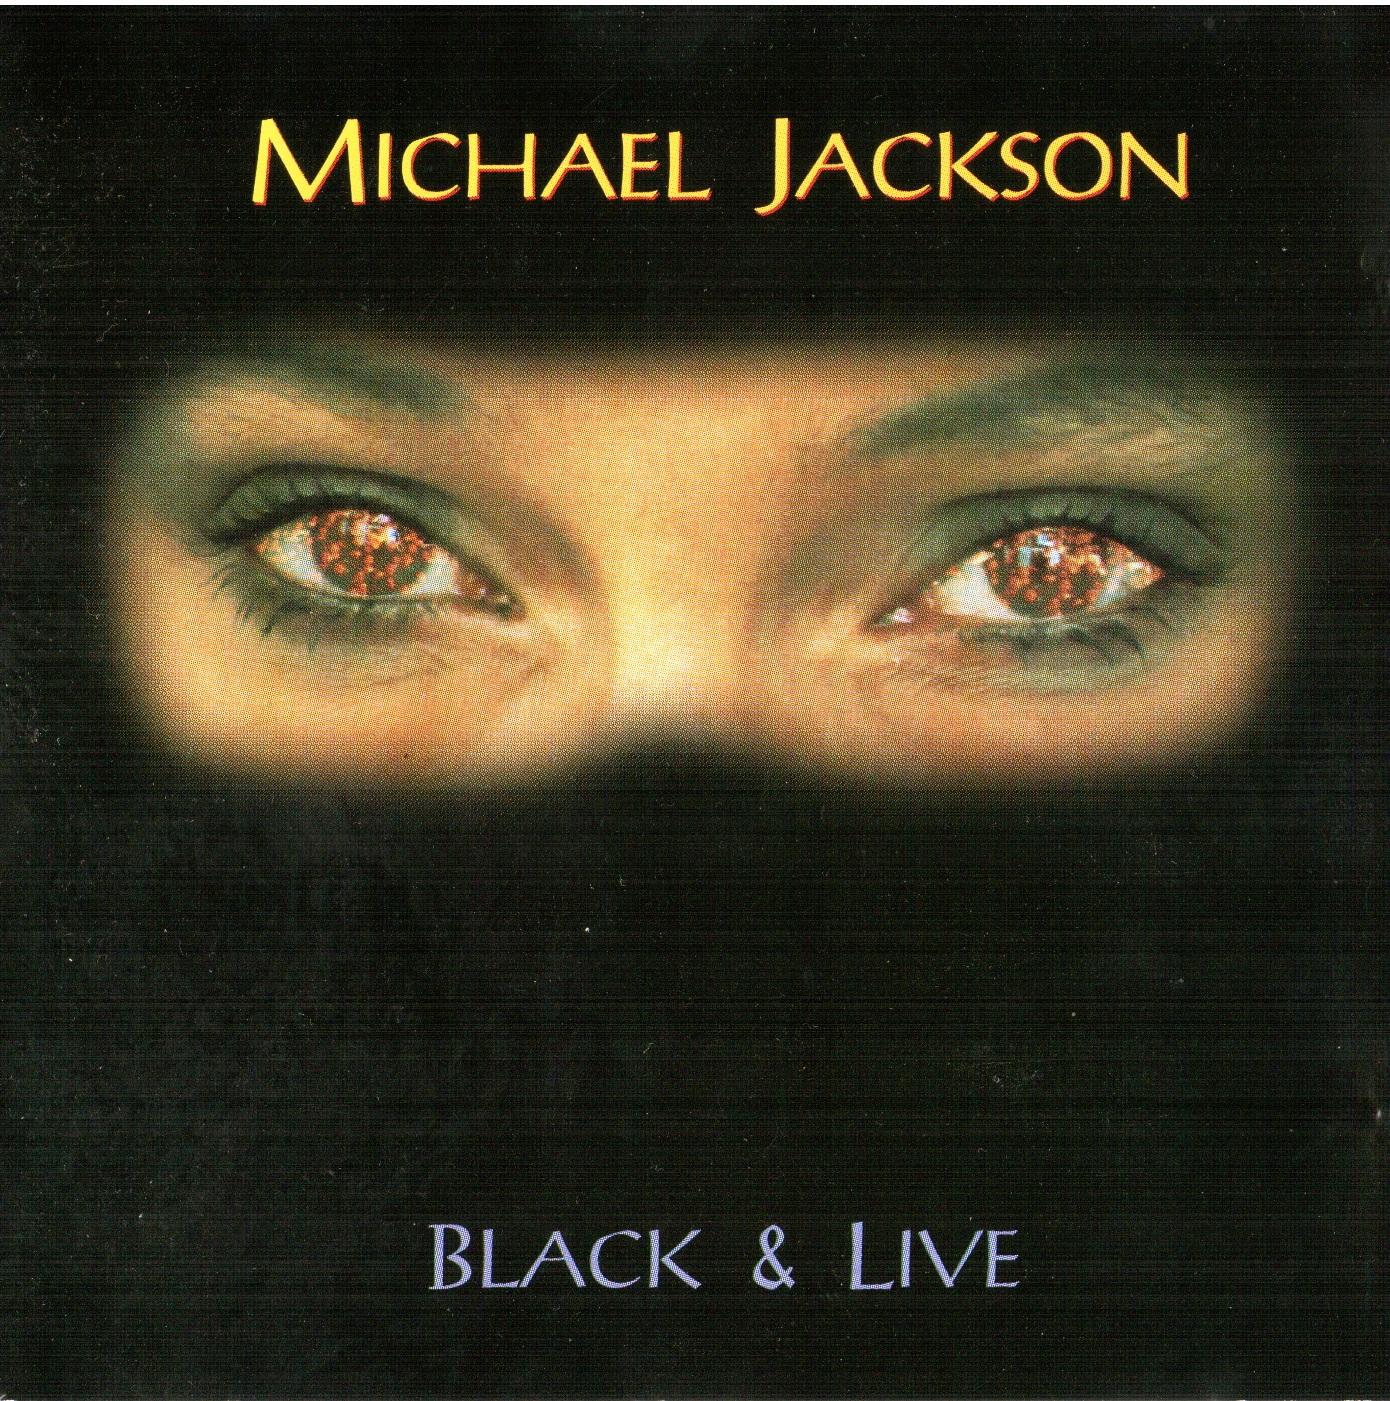 World of bootlegs bootleg michael jackson 39 black for 13th floor with diana live dvd